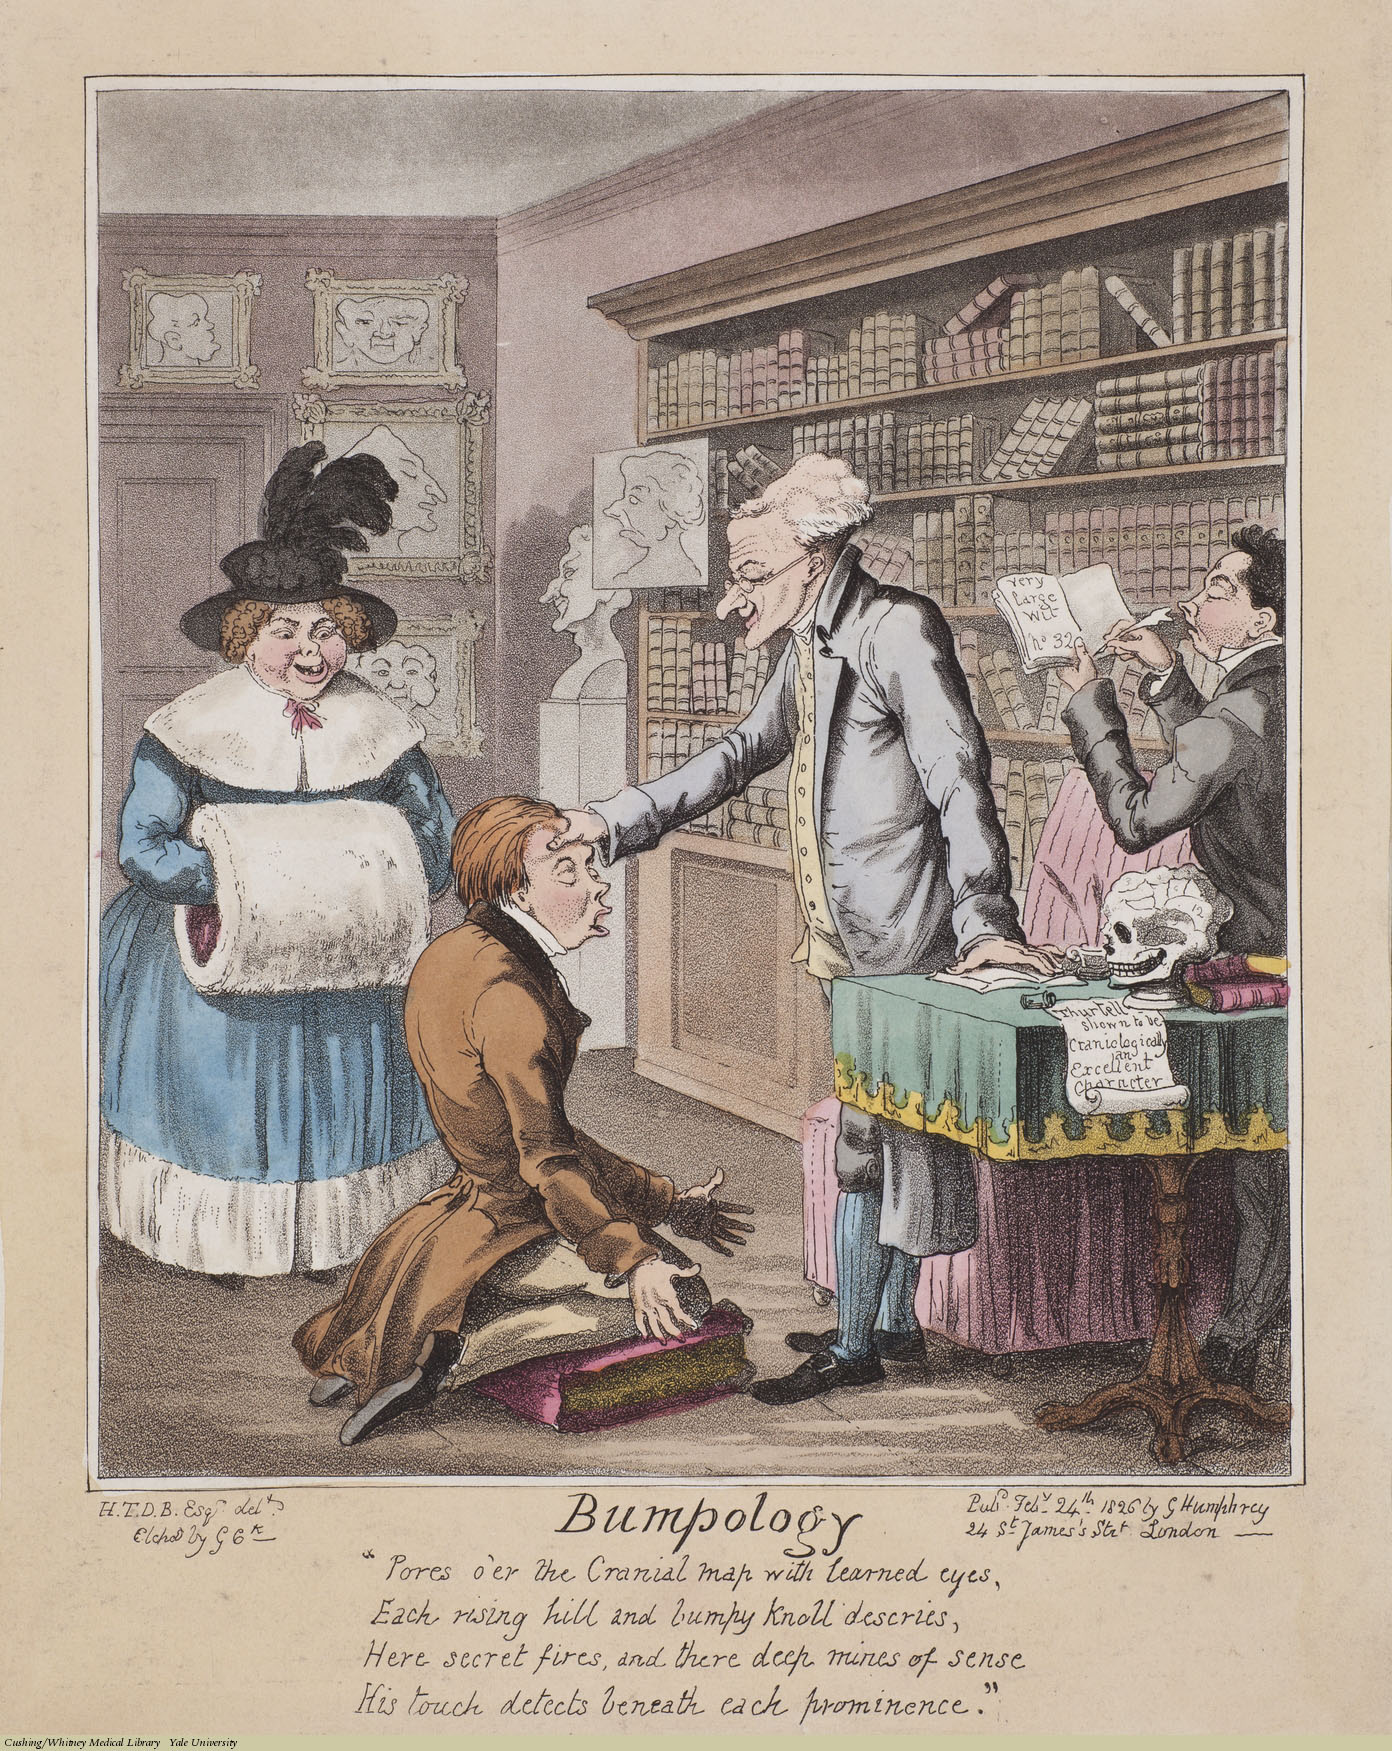 Bumpology, George Cruikshank, Aquatint coloured. Subject: James De Ville, John Thurtell, executed 1824, Phrenology.